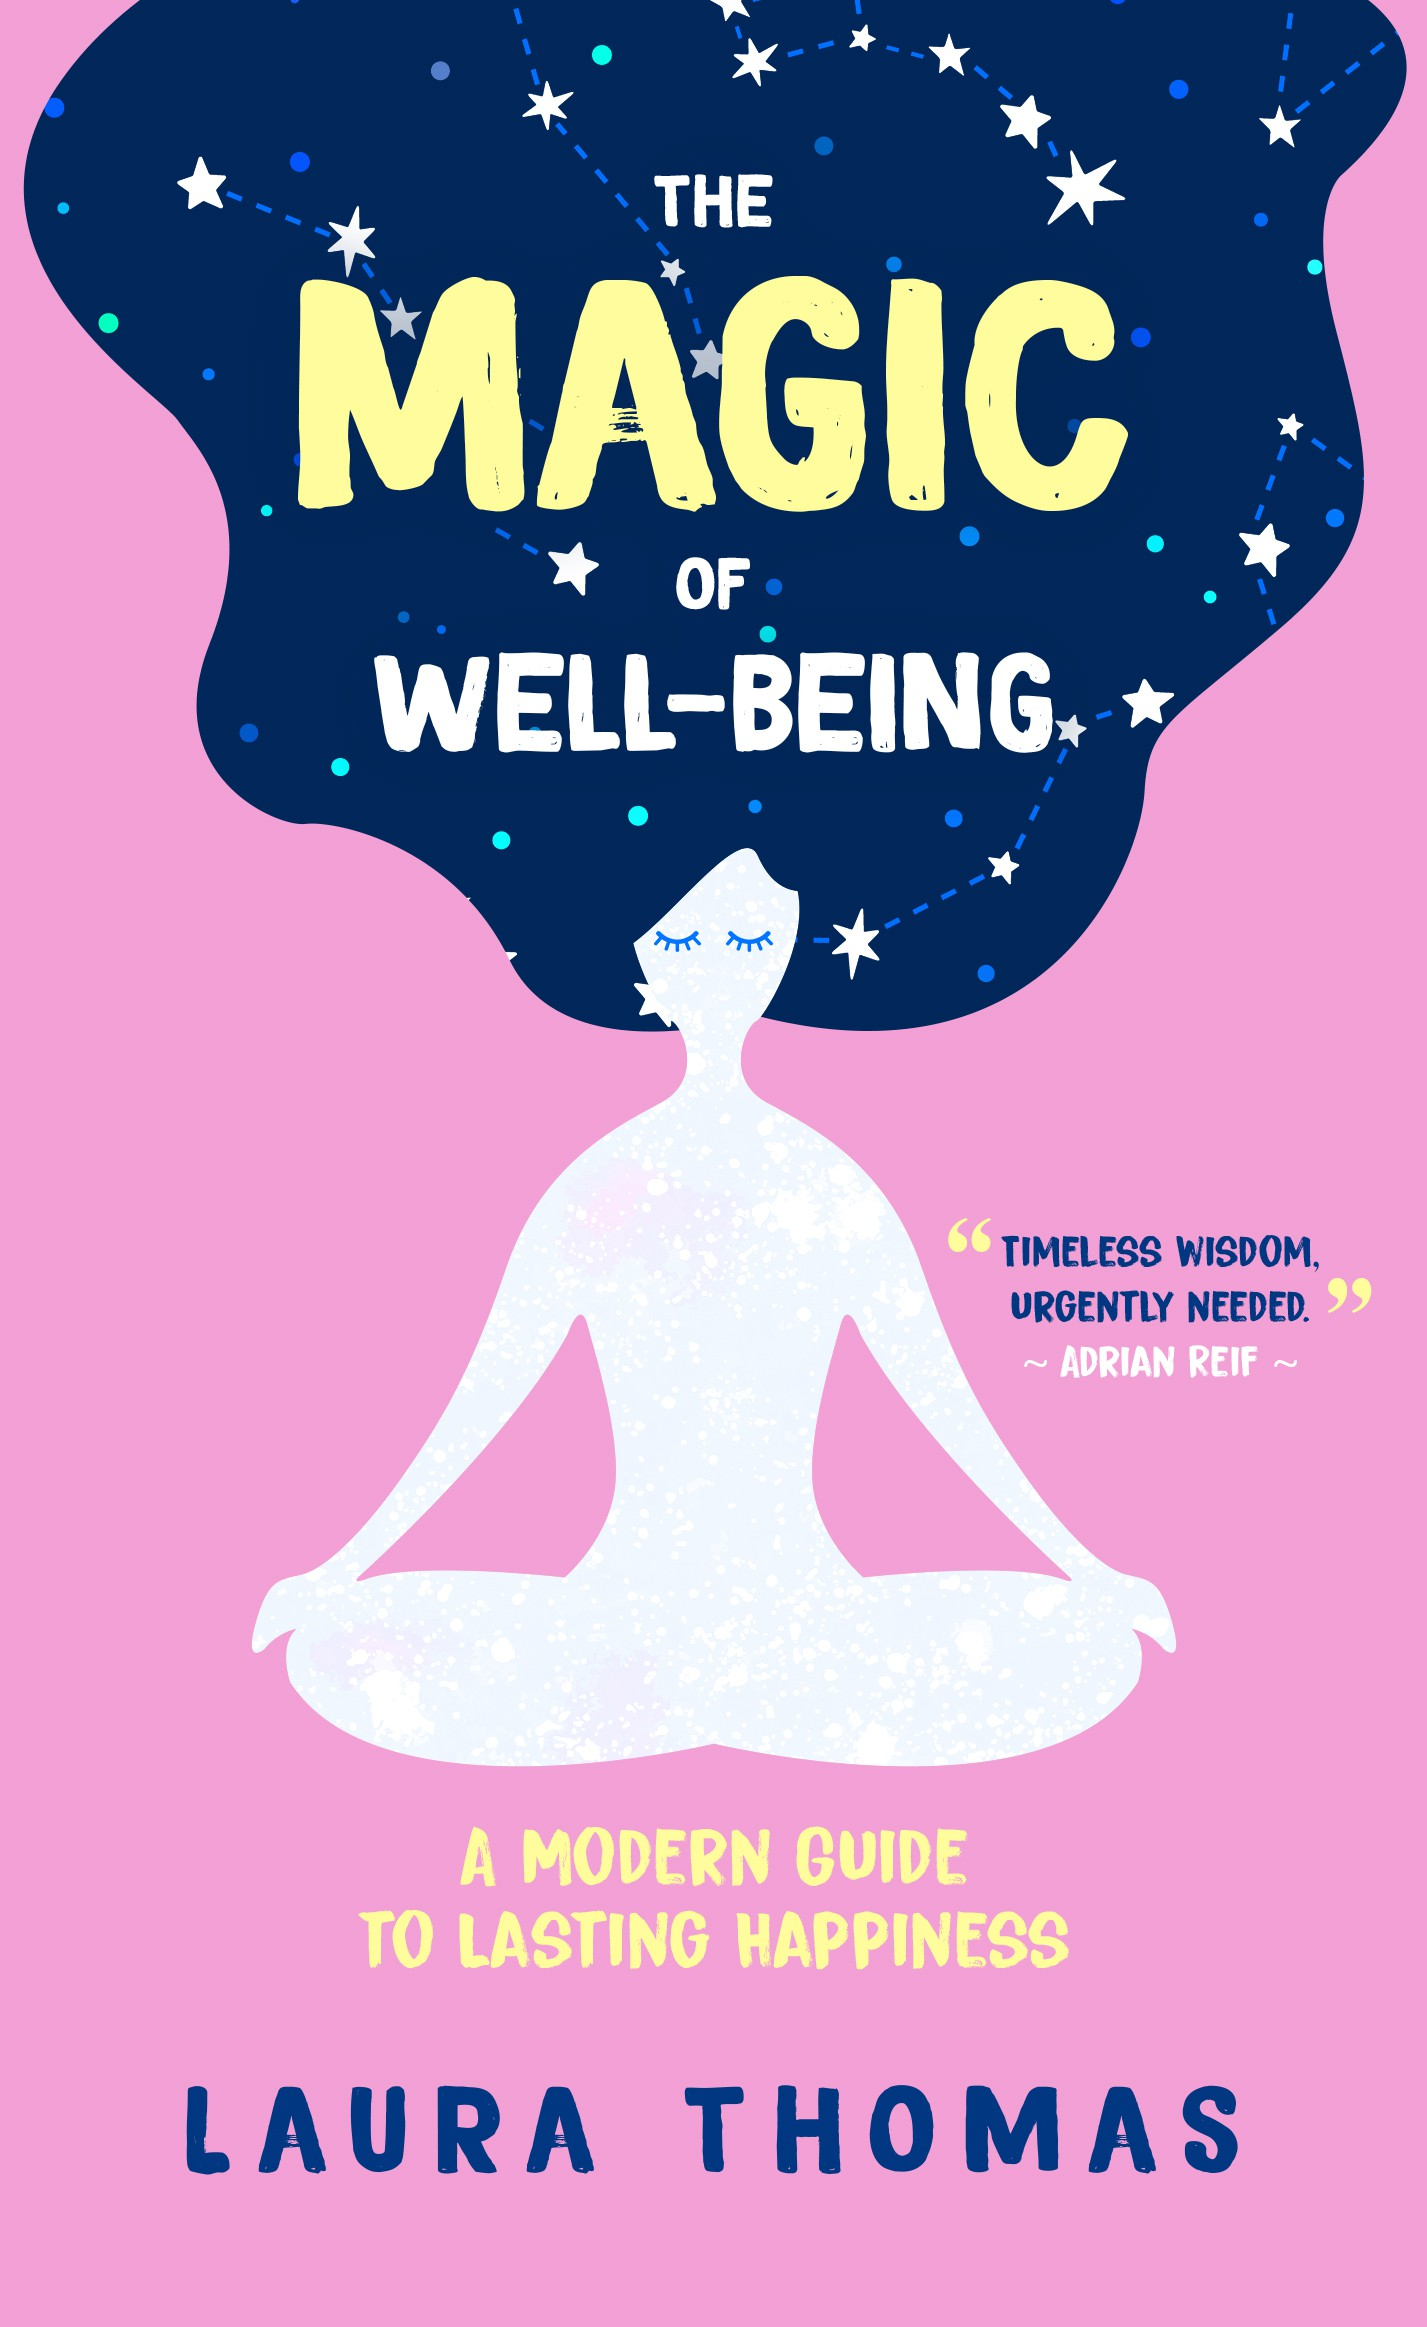 Magical Book cover for women about well-being & happiness